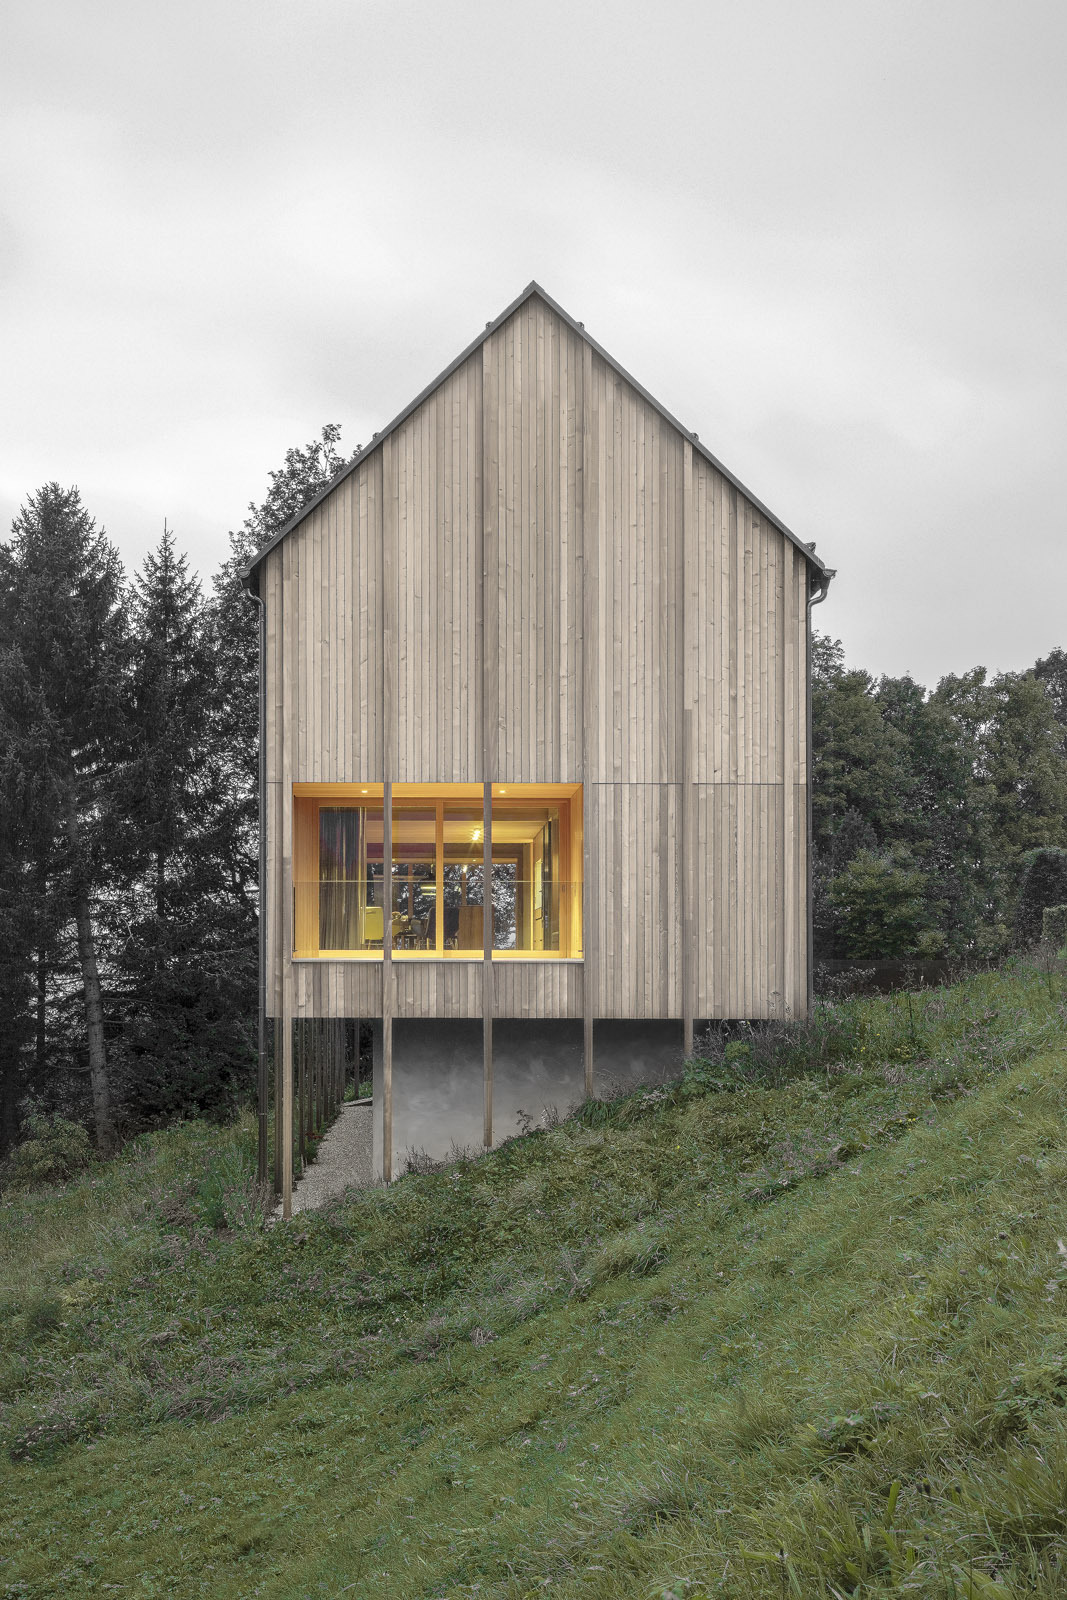 Typical farmhouse reimagined in modern contexts by Bernardo Bader Architects on Inspirationde